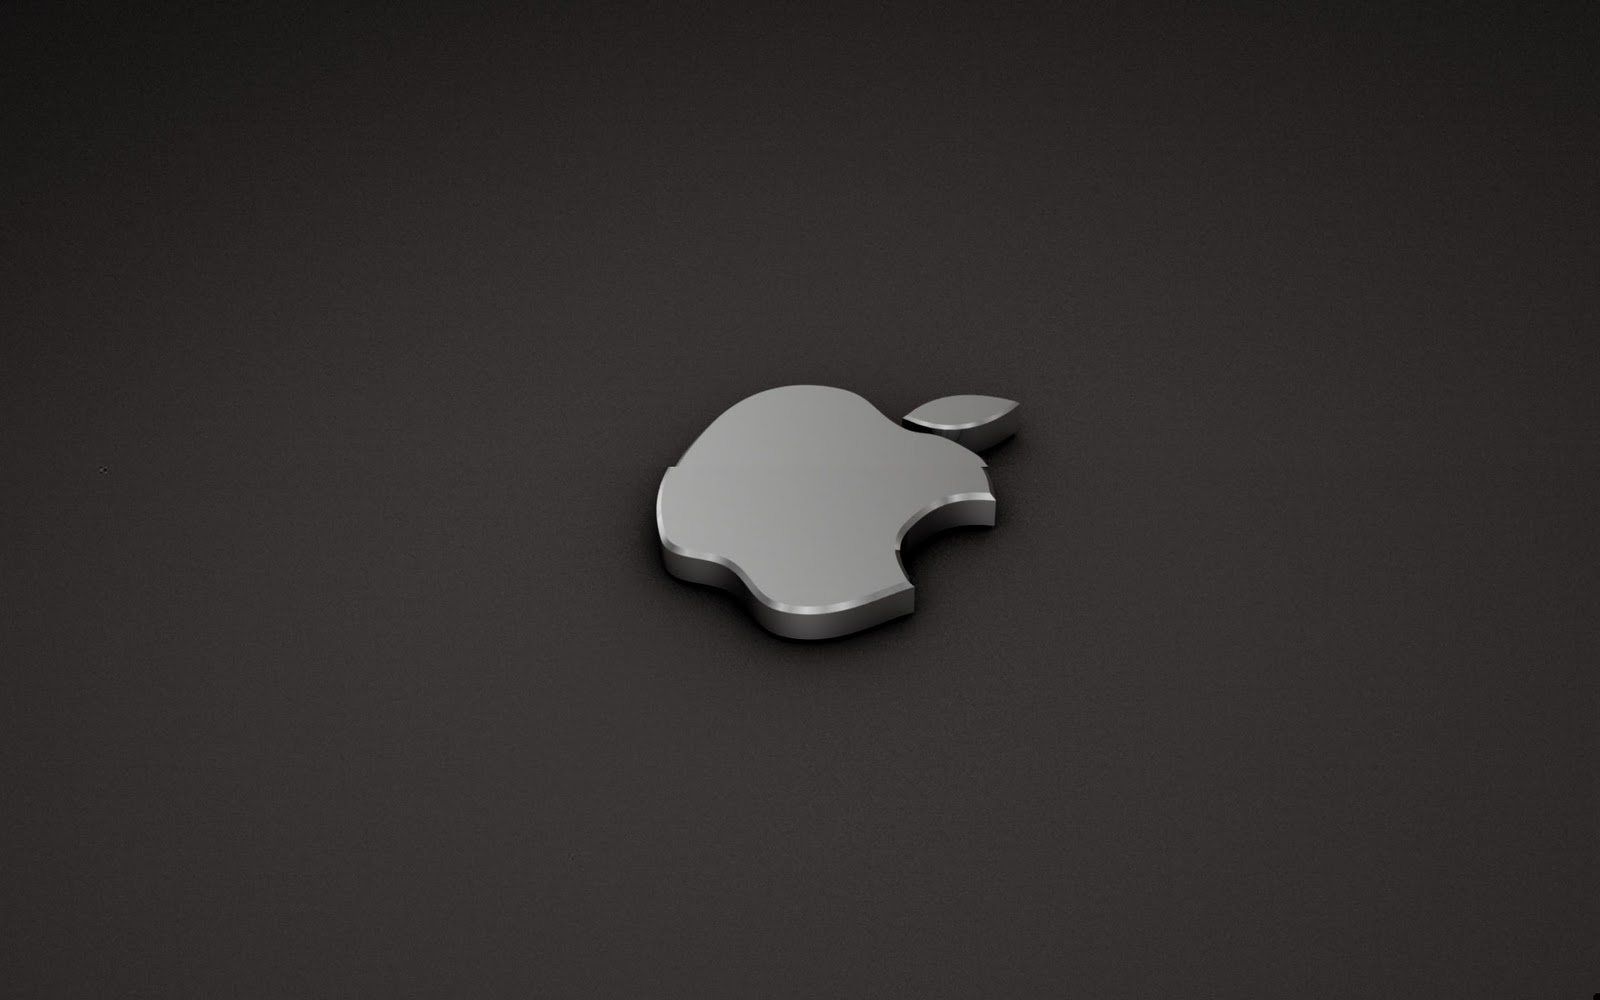 http://2.bp.blogspot.com/-bUu78e_w1qw/TxY94kbf9GI/AAAAAAAAEnA/ClRKMQ7C35Y/s1600/Apple%20Logo%20Wallpaper%20New%20Collections%201.jpg